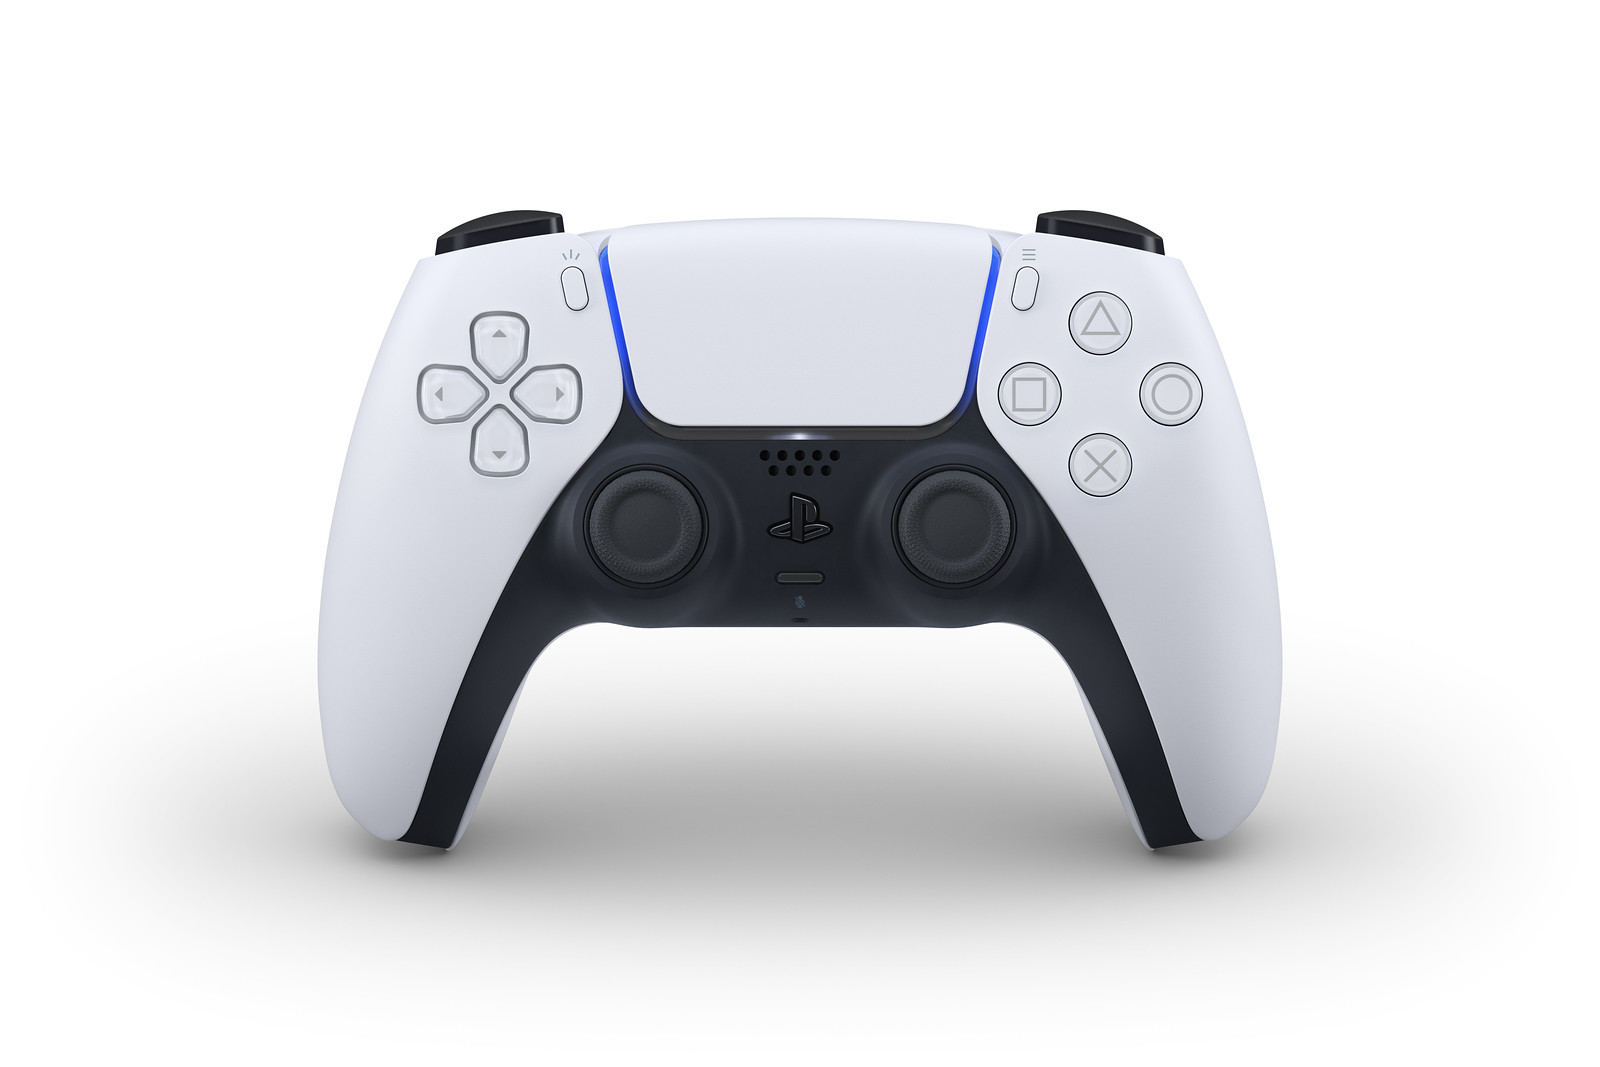 http://server.digimetriq.com/wp-content/uploads/2021/02/1612448237_93_PlayStation-5-Review-A-Powerful-Game-Console.png